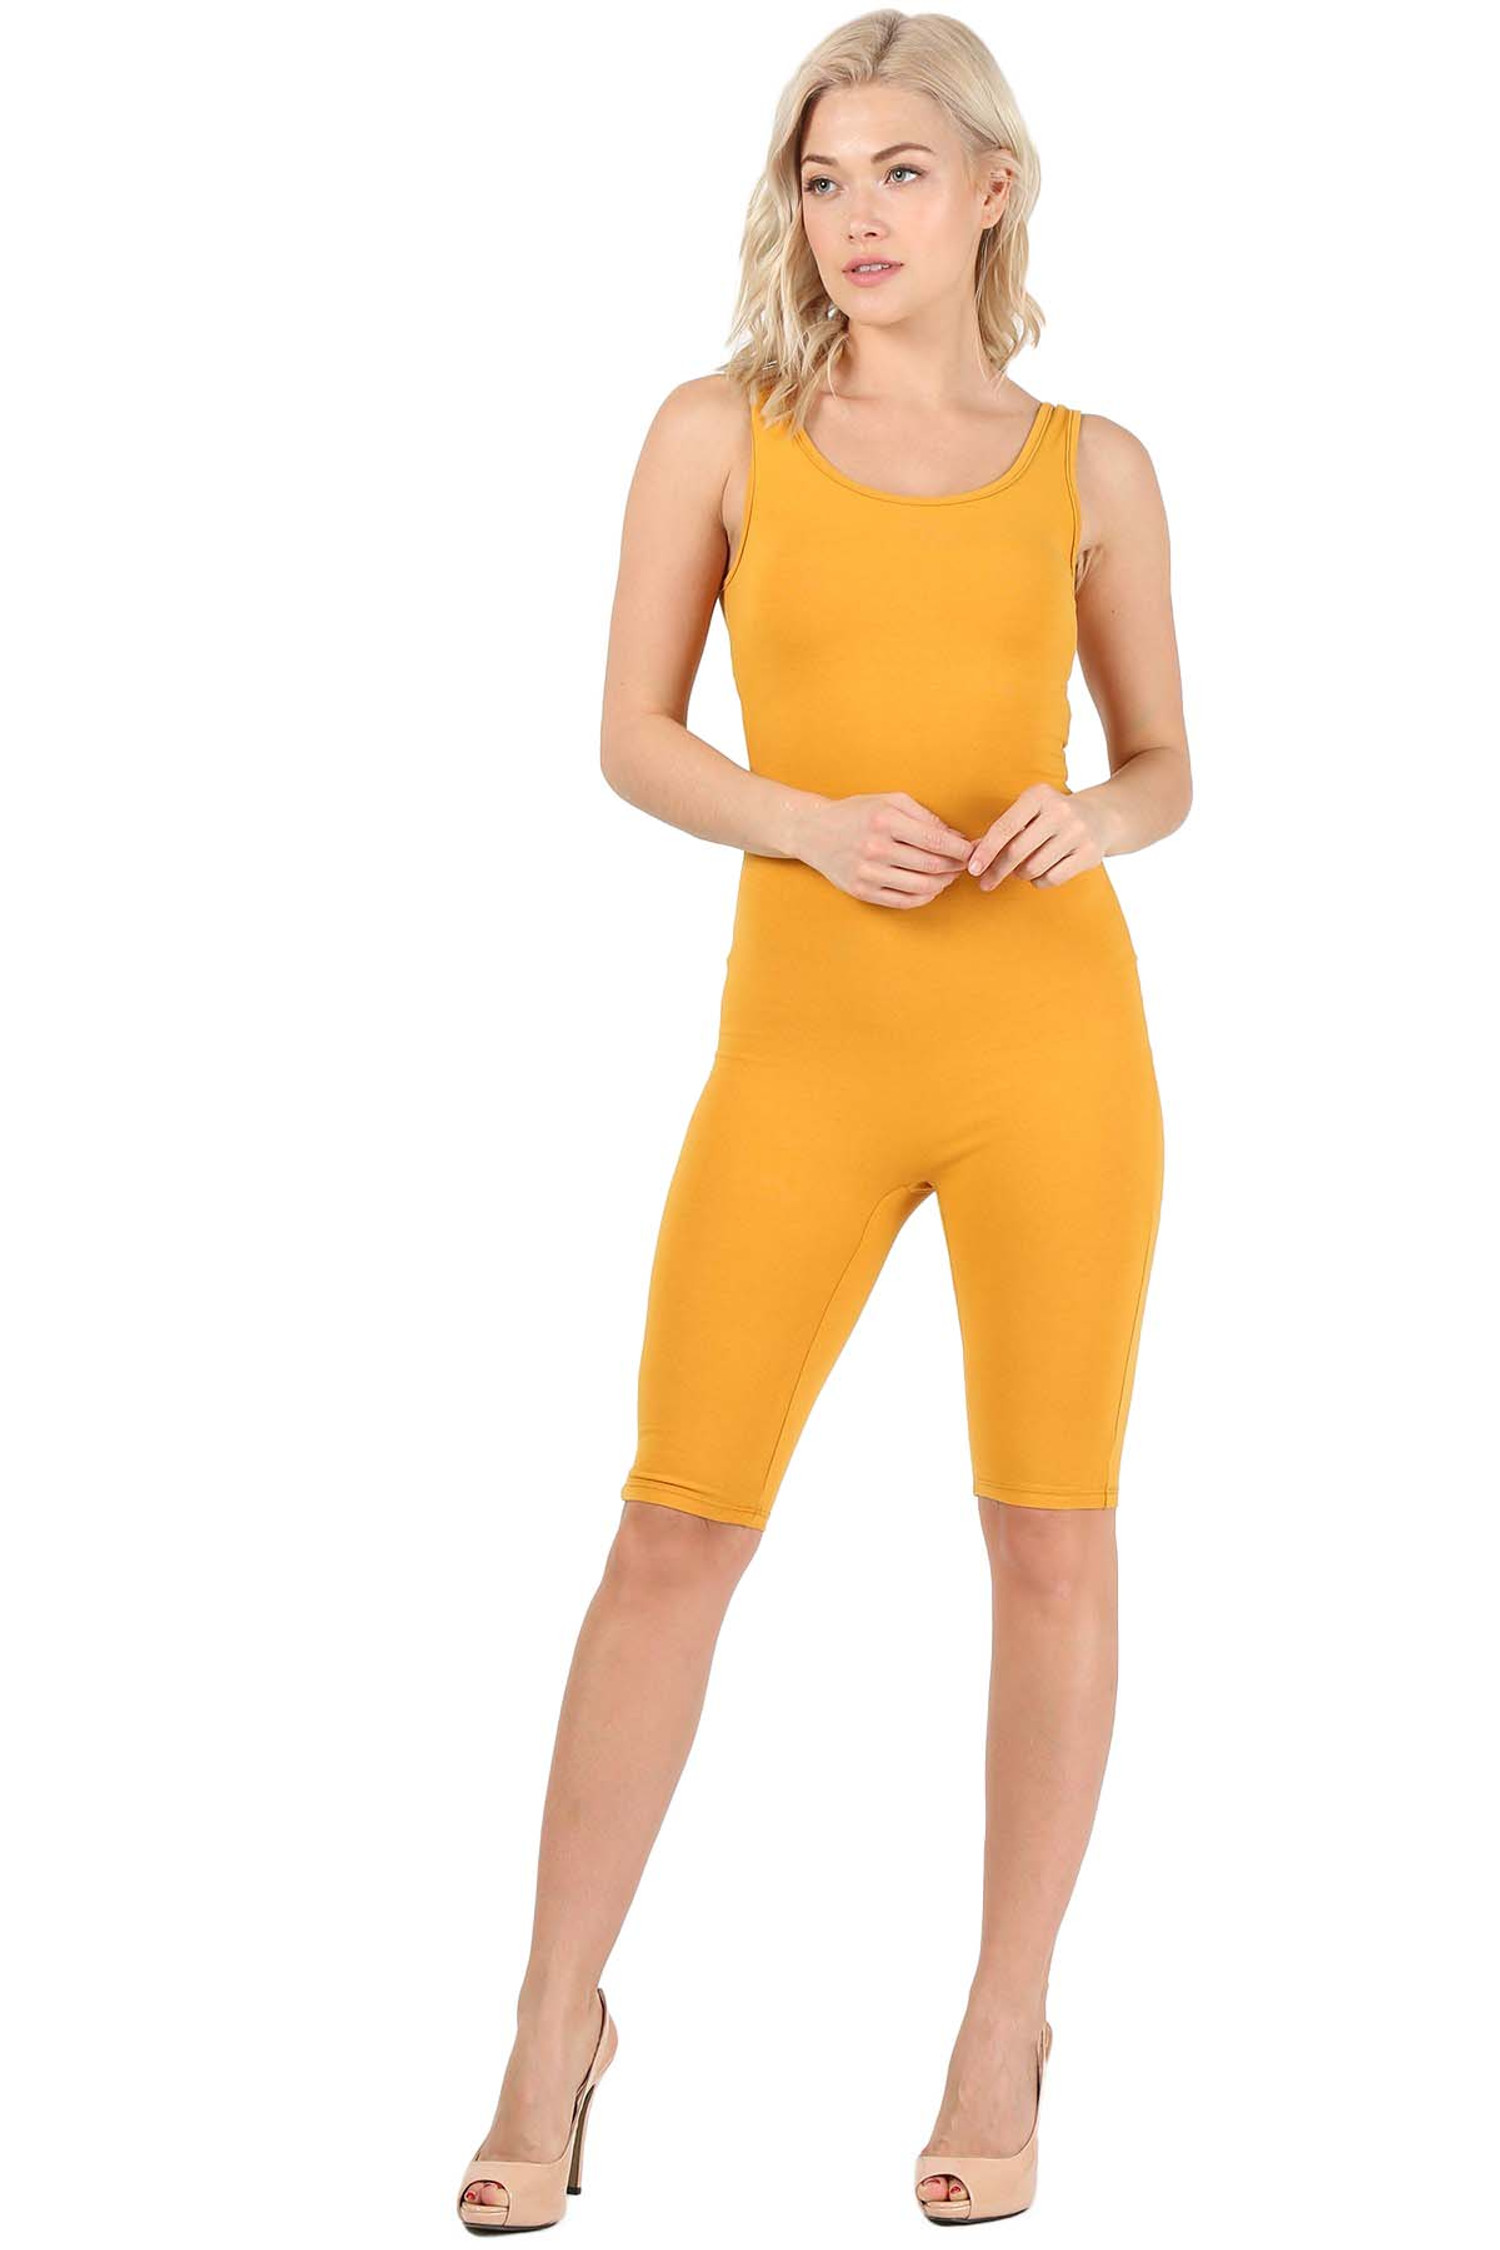 USA Basic Cotton Thigh High Plus Size Jumpsuit